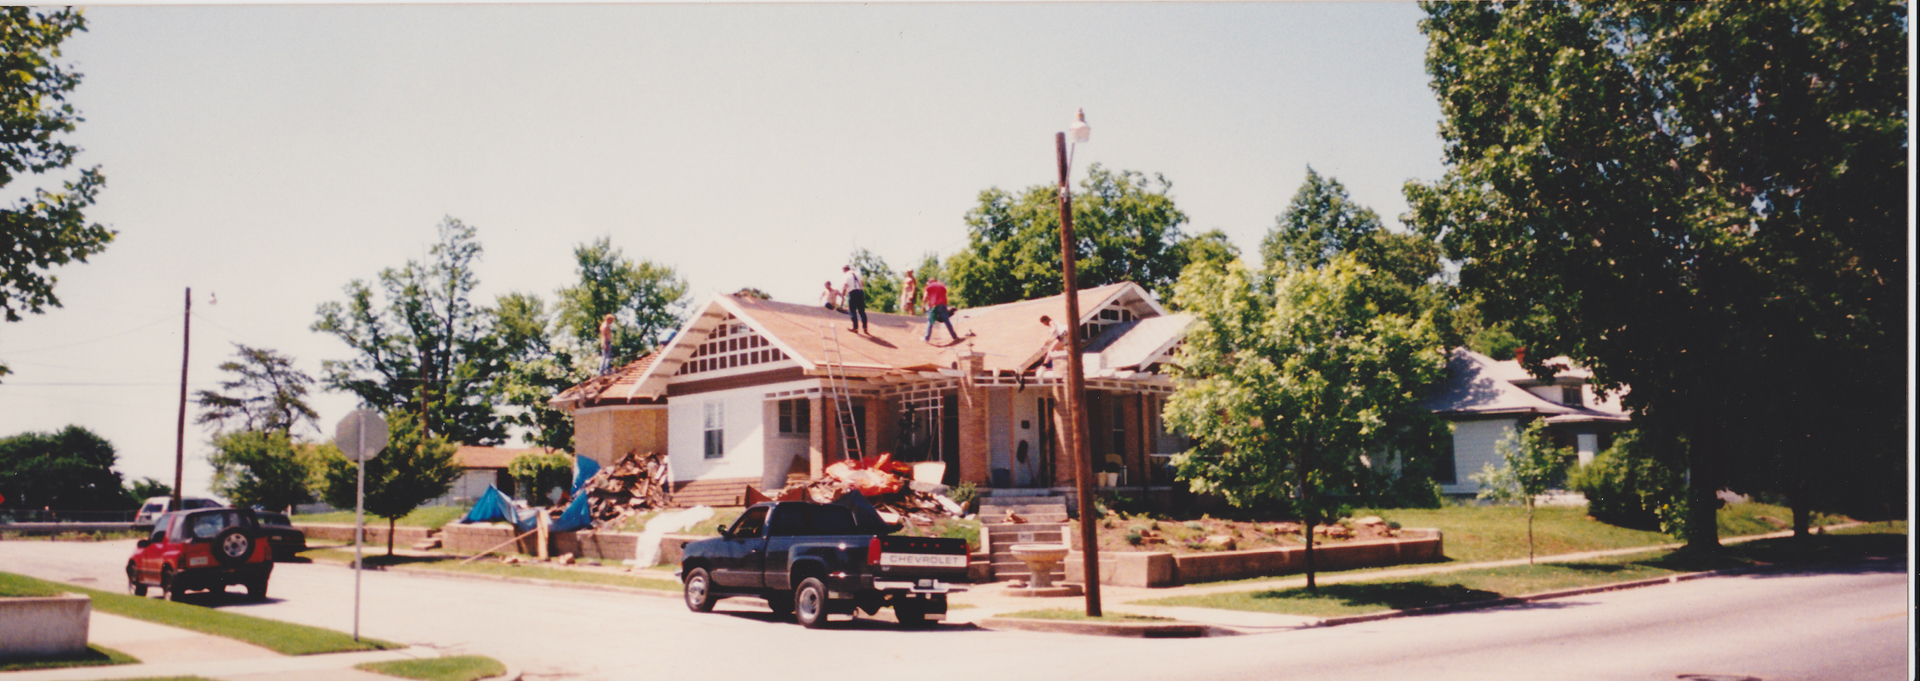 902 N. Denver receiving a new roof by fellow neighbors. (Image by McDaniel Family)